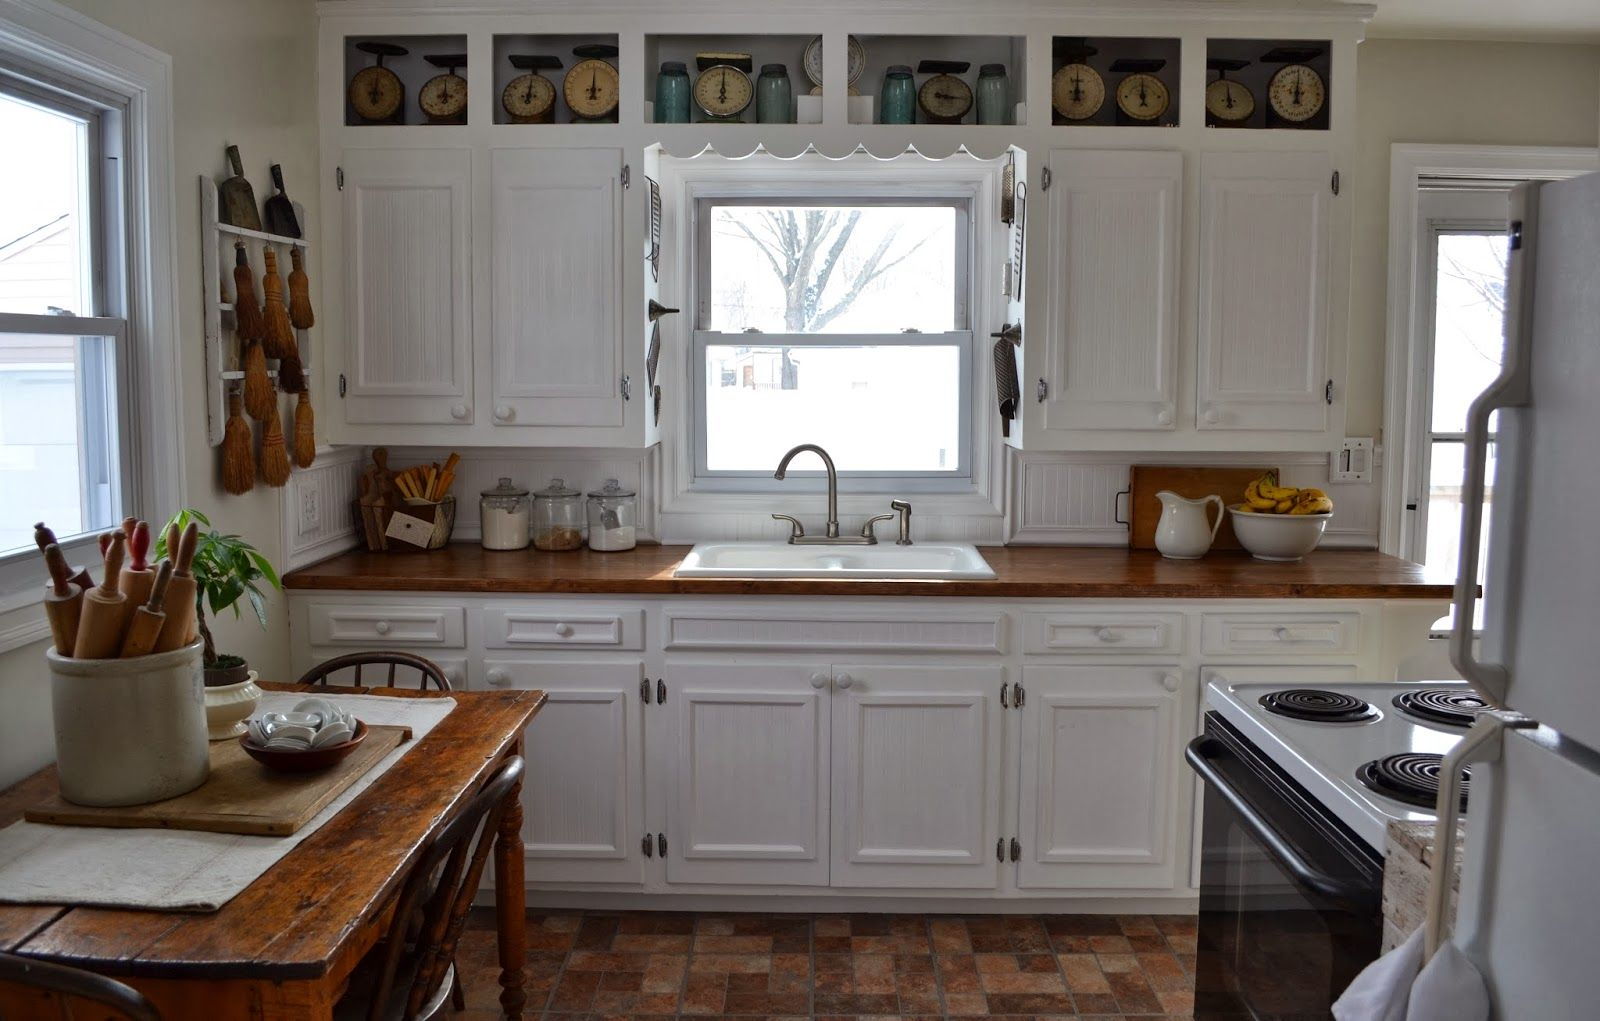 Pin by sandra anderson on kitchens iii pinterest for Anderson kitchen cabinets